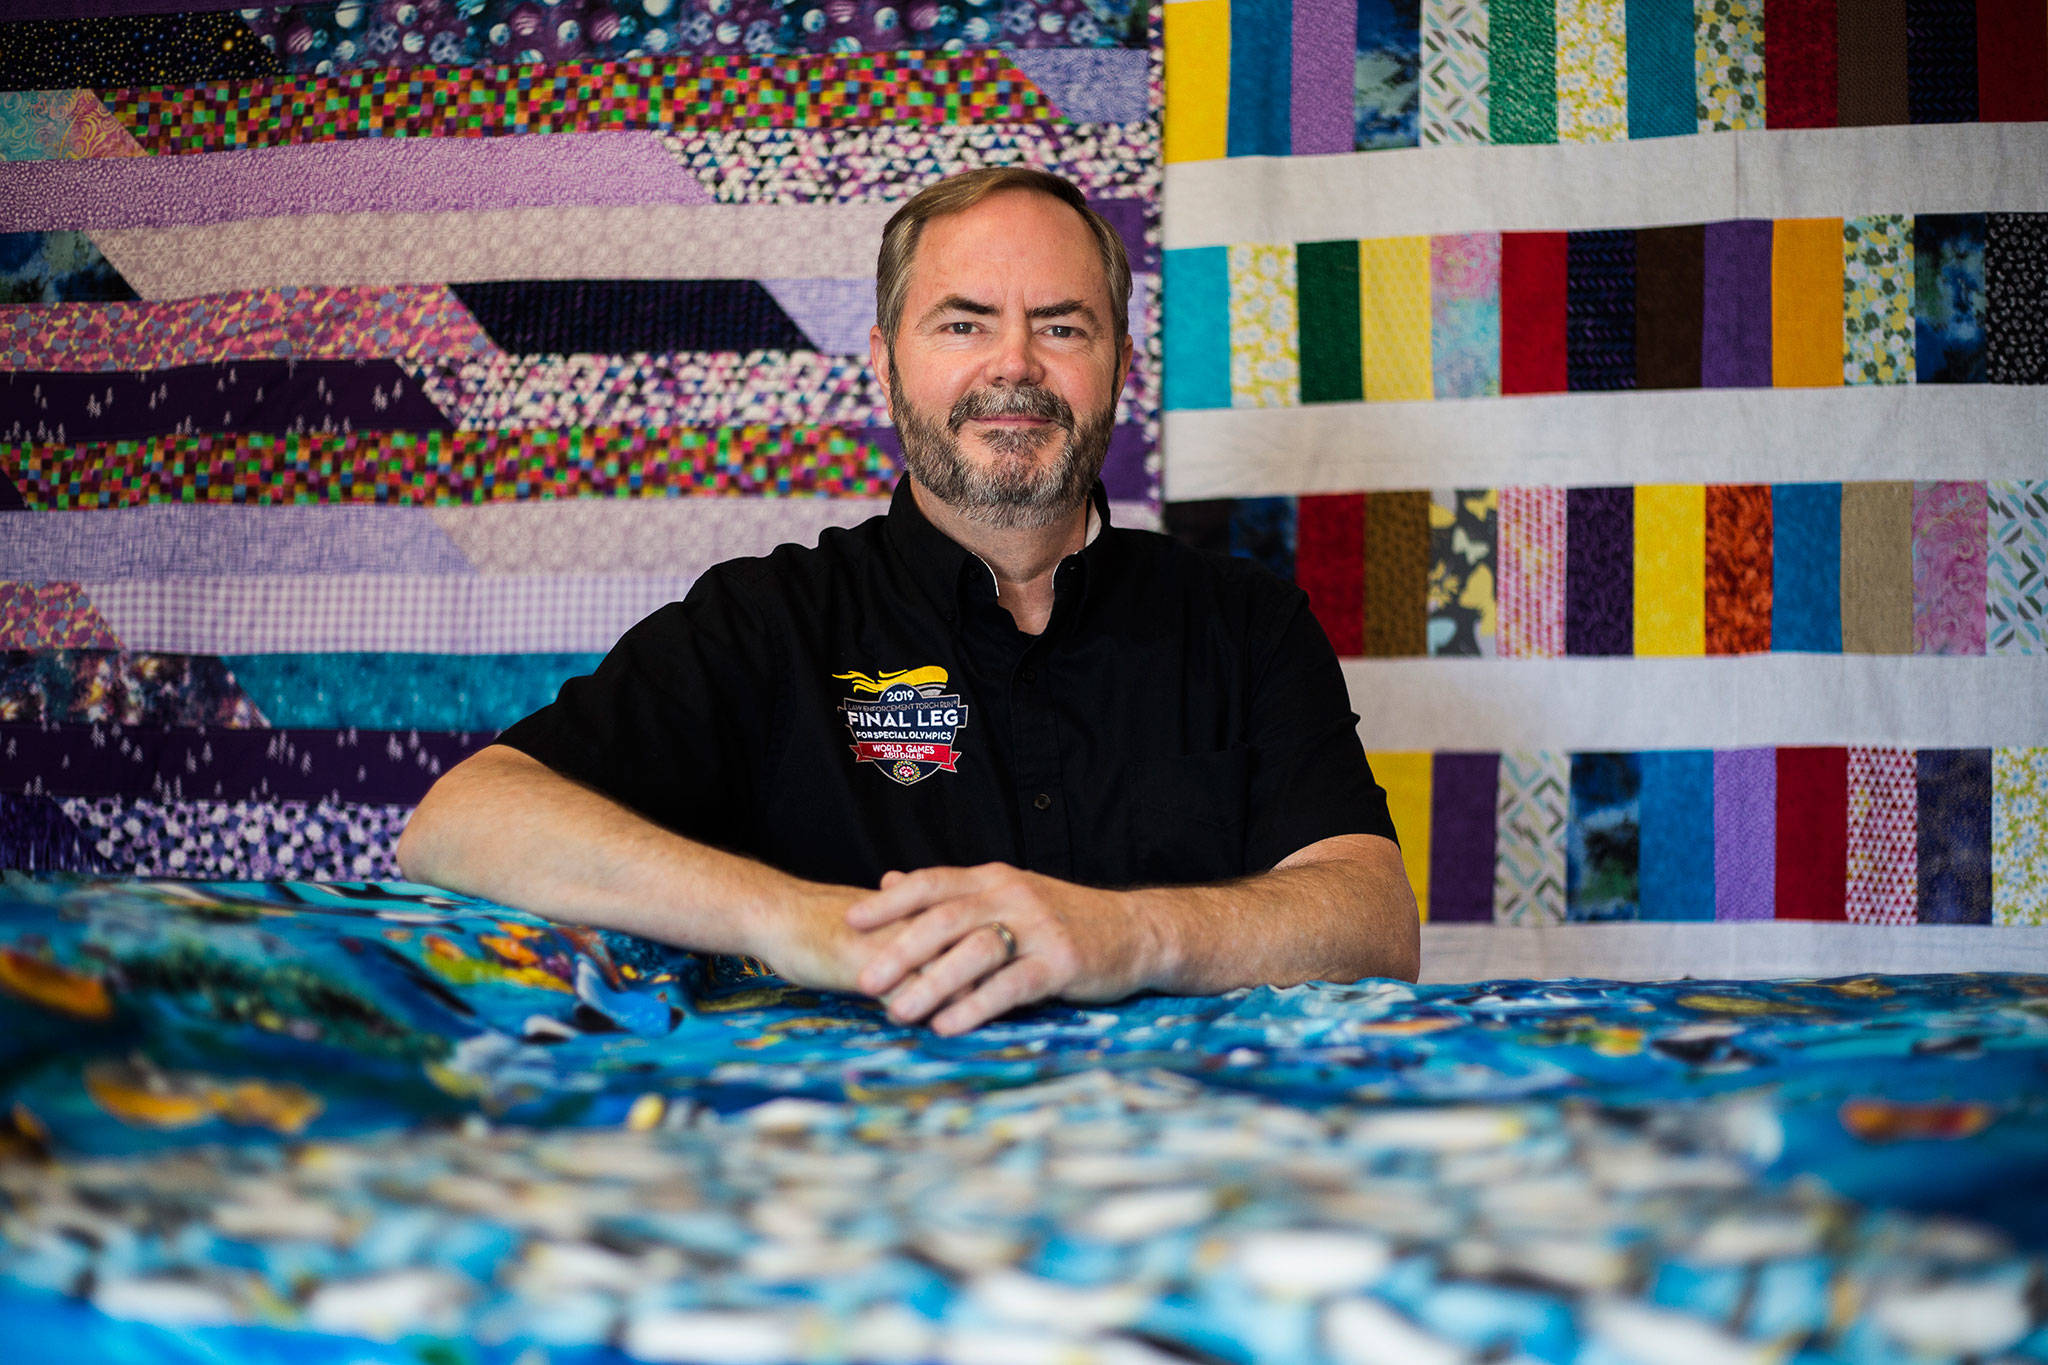 Red Caldwell in his home workshop in Brier, where he makes quilts for donation to charity. (Olivia Vanni / The Herald)